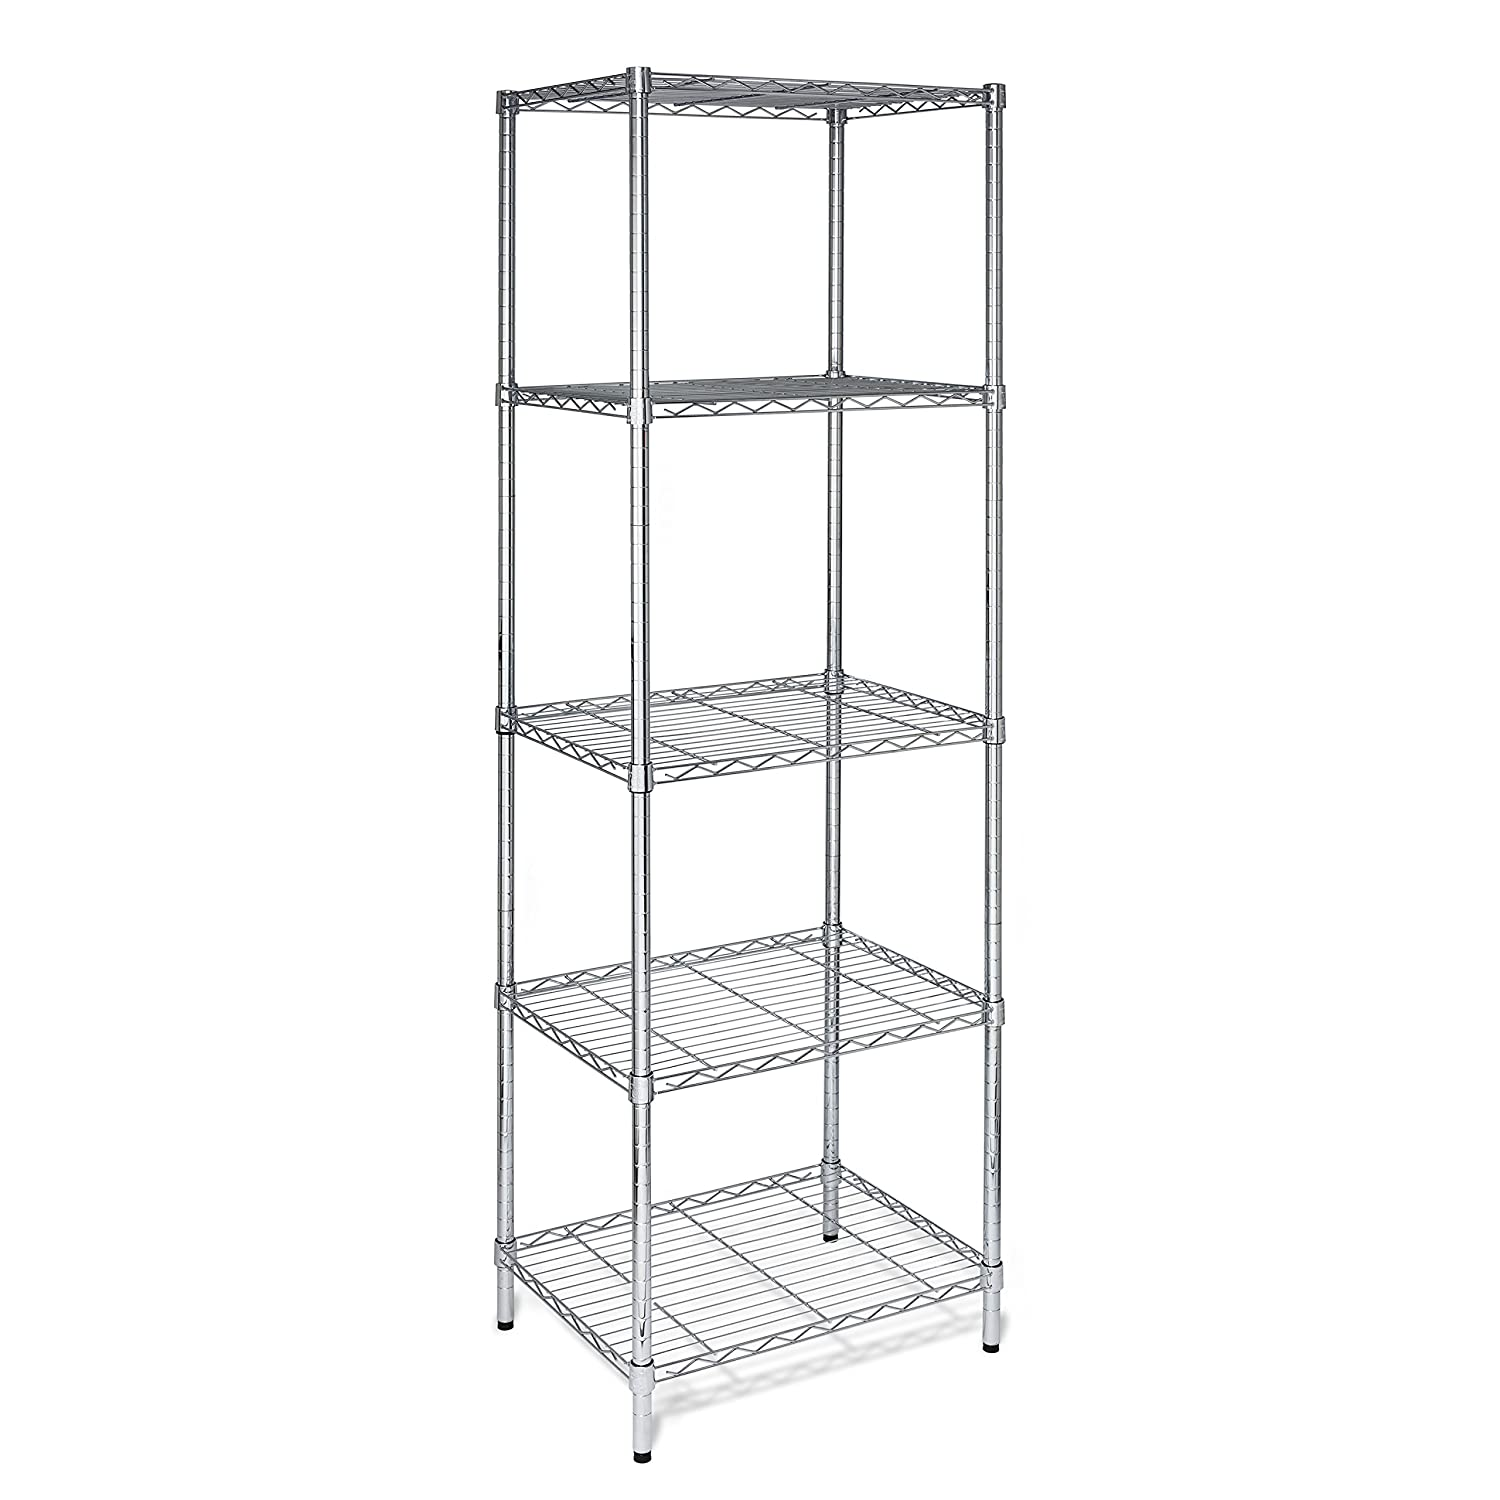 Honey-Can-Do SHF-01054 5-Tier Chrome Shelving Unit, 250 lbs